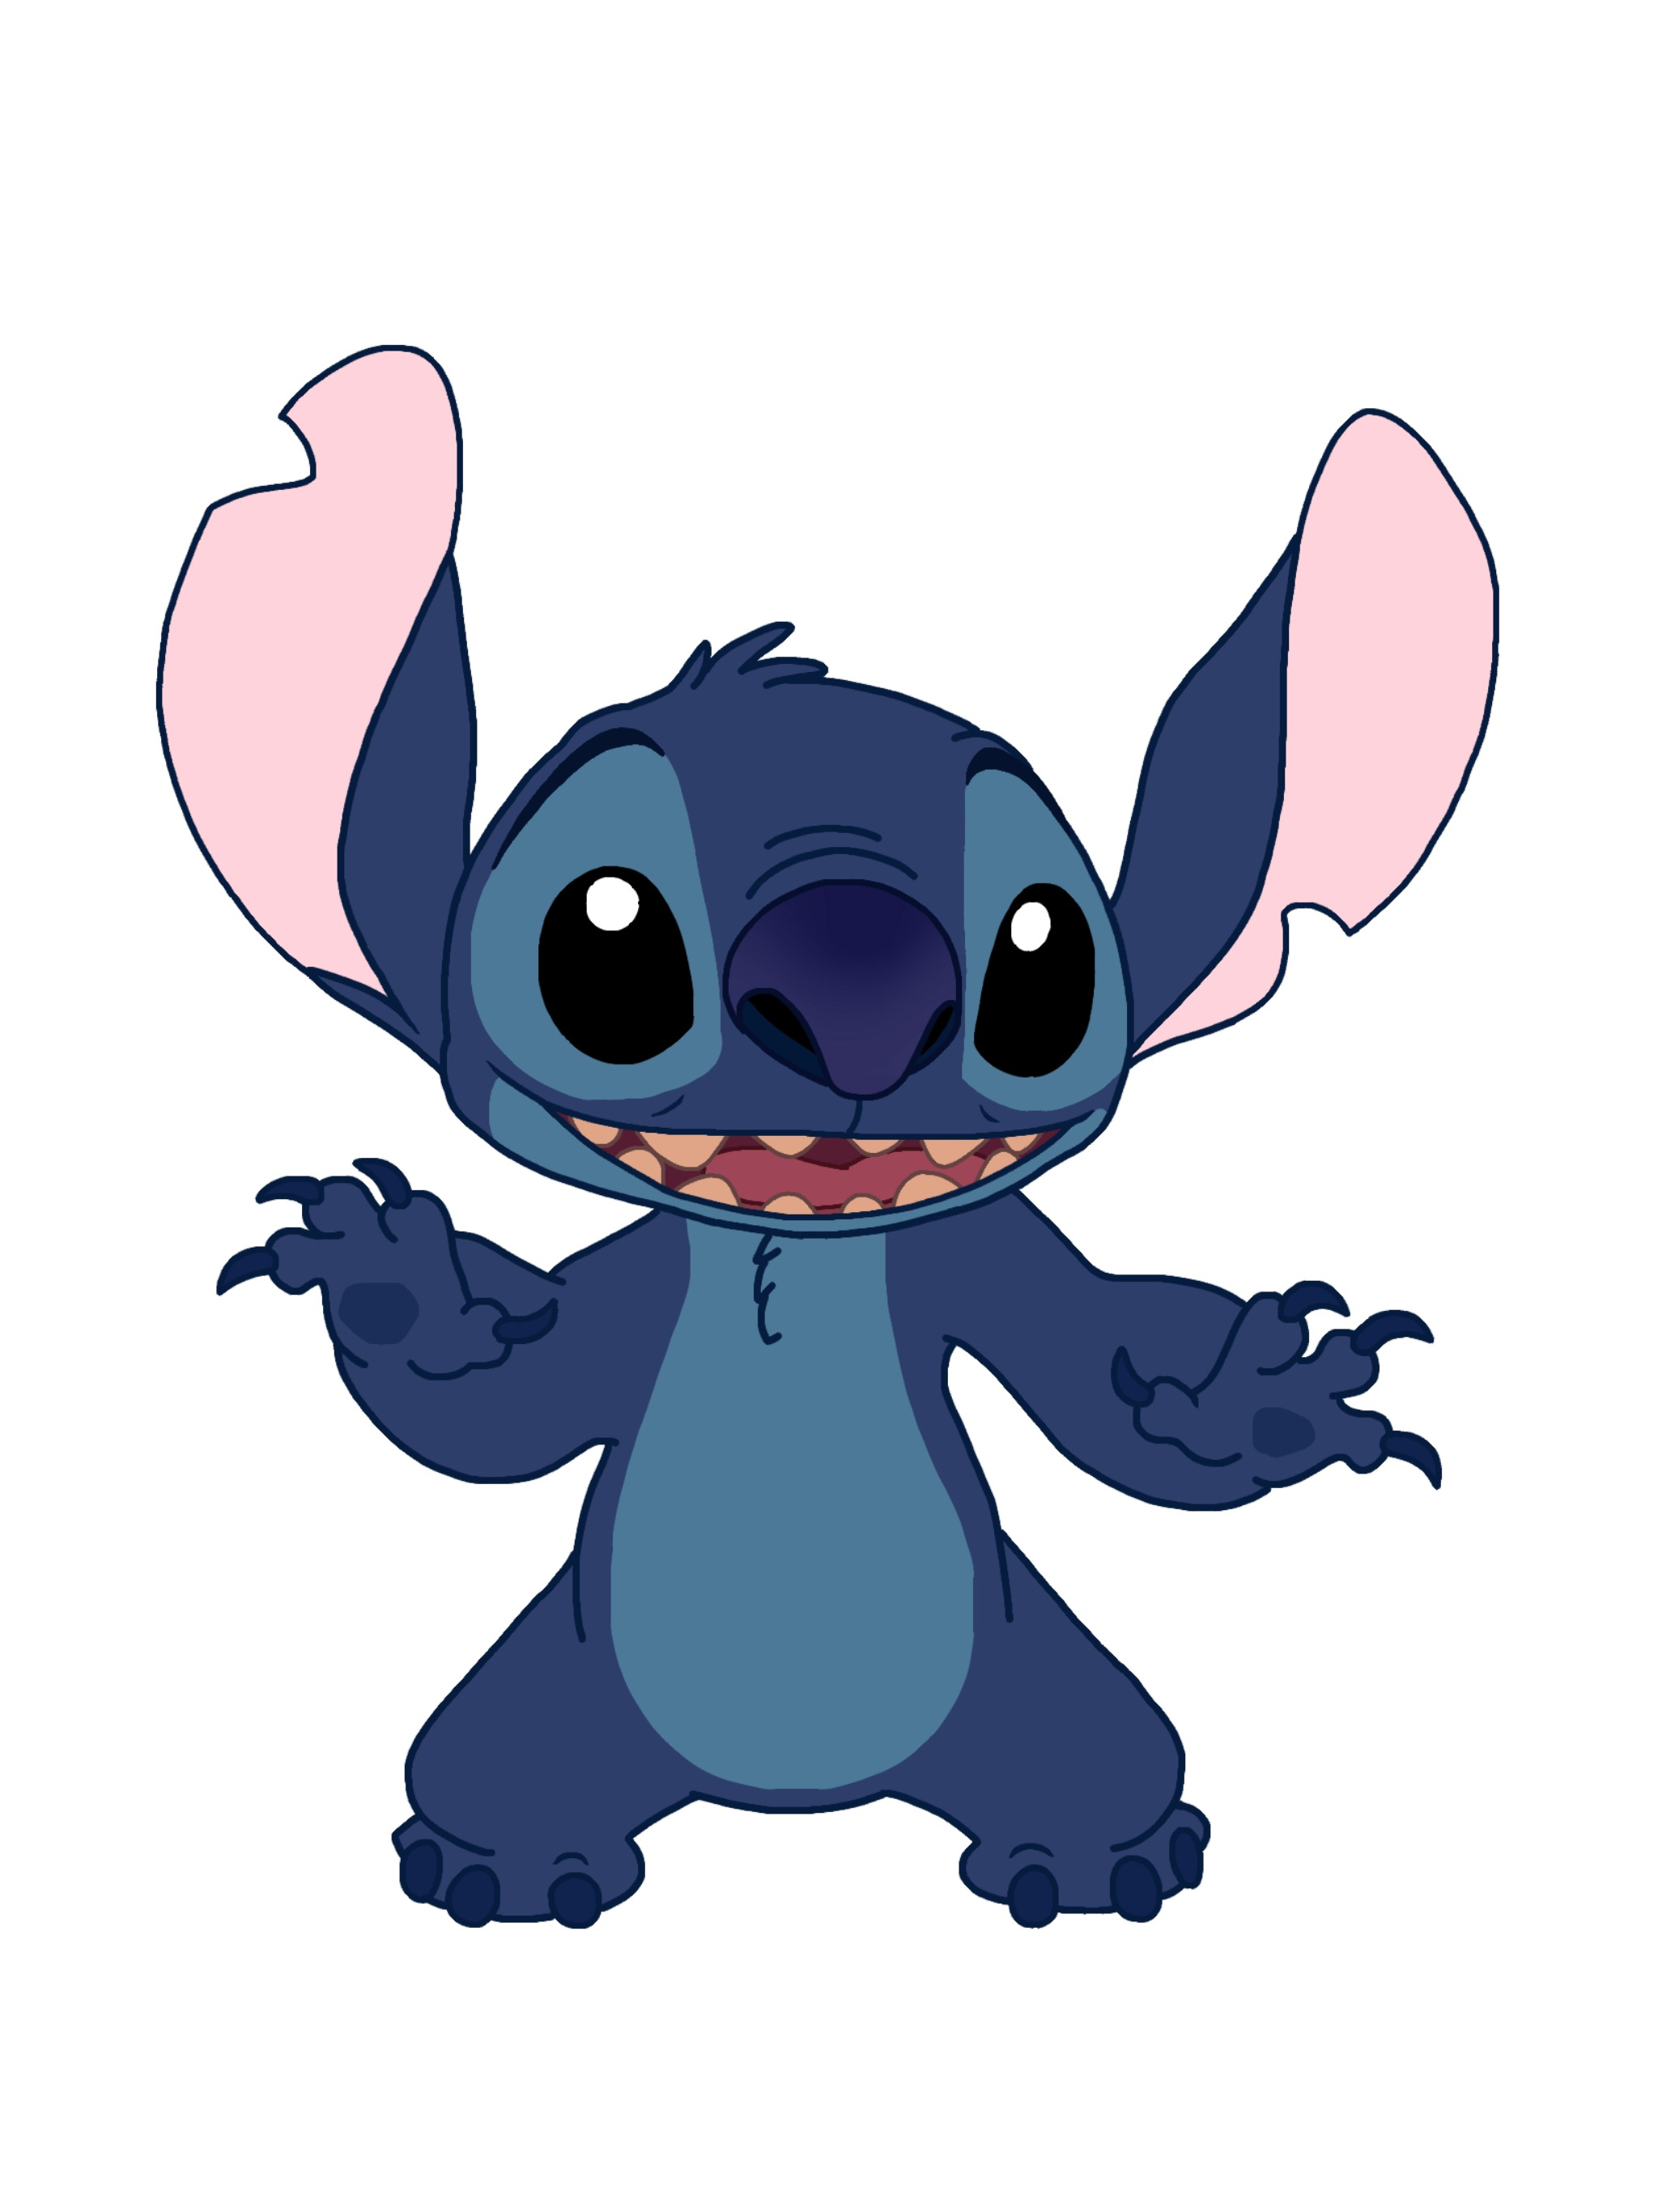 It is a picture of Modest Images of Lilo & Stitch